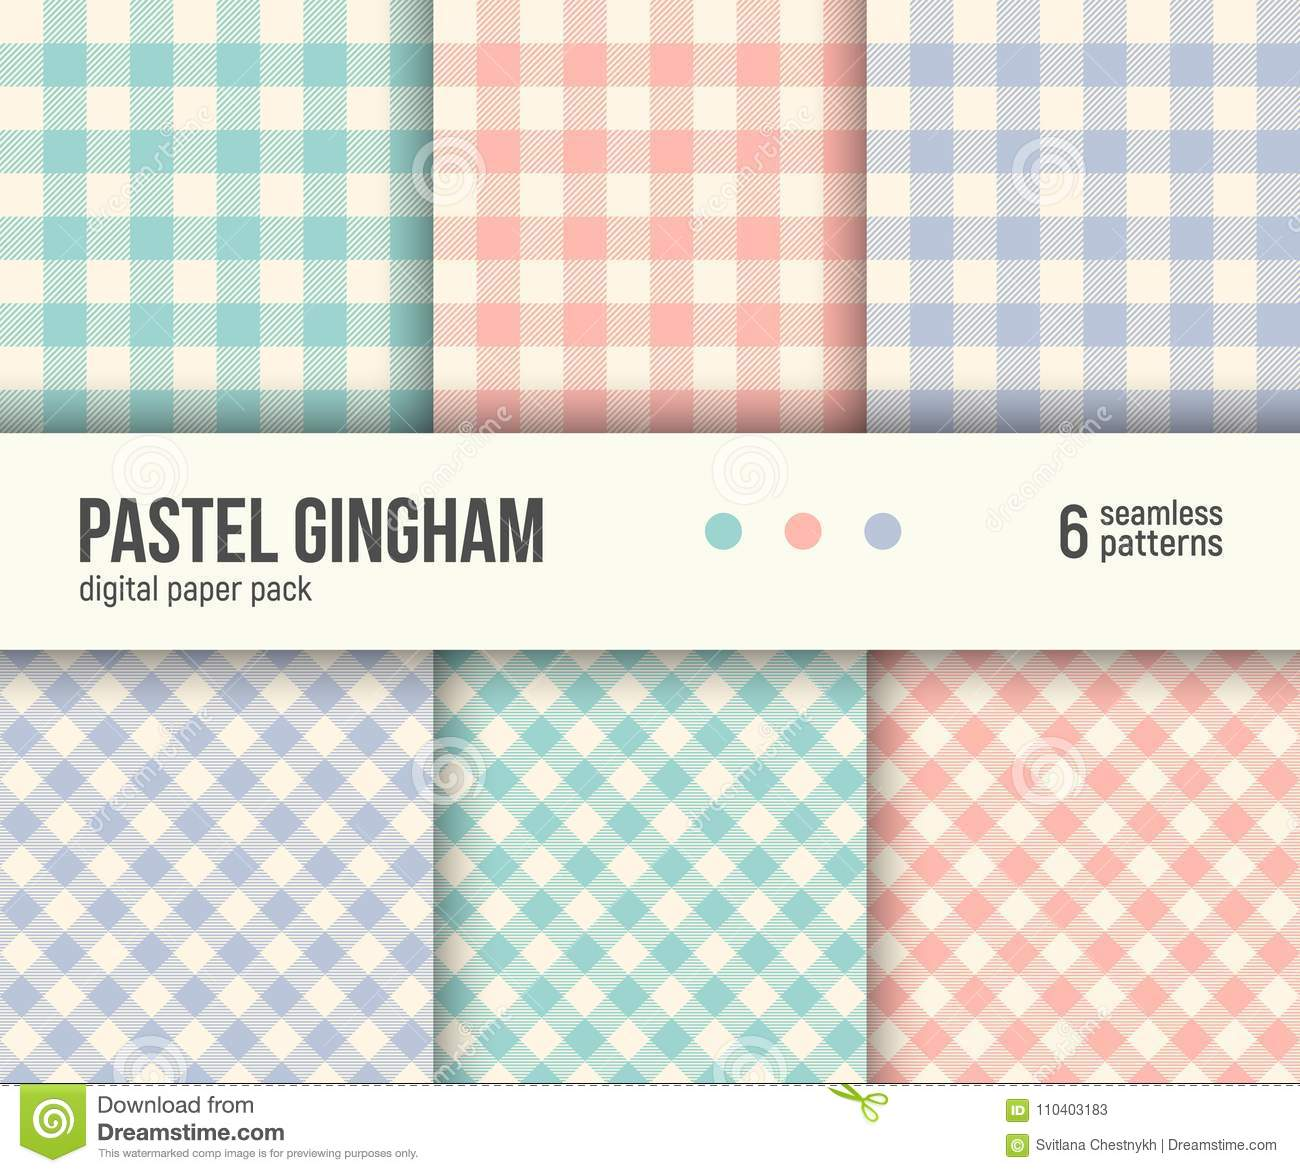 Digital paper pack, 6 traditional Gingham patterns, pastel colors